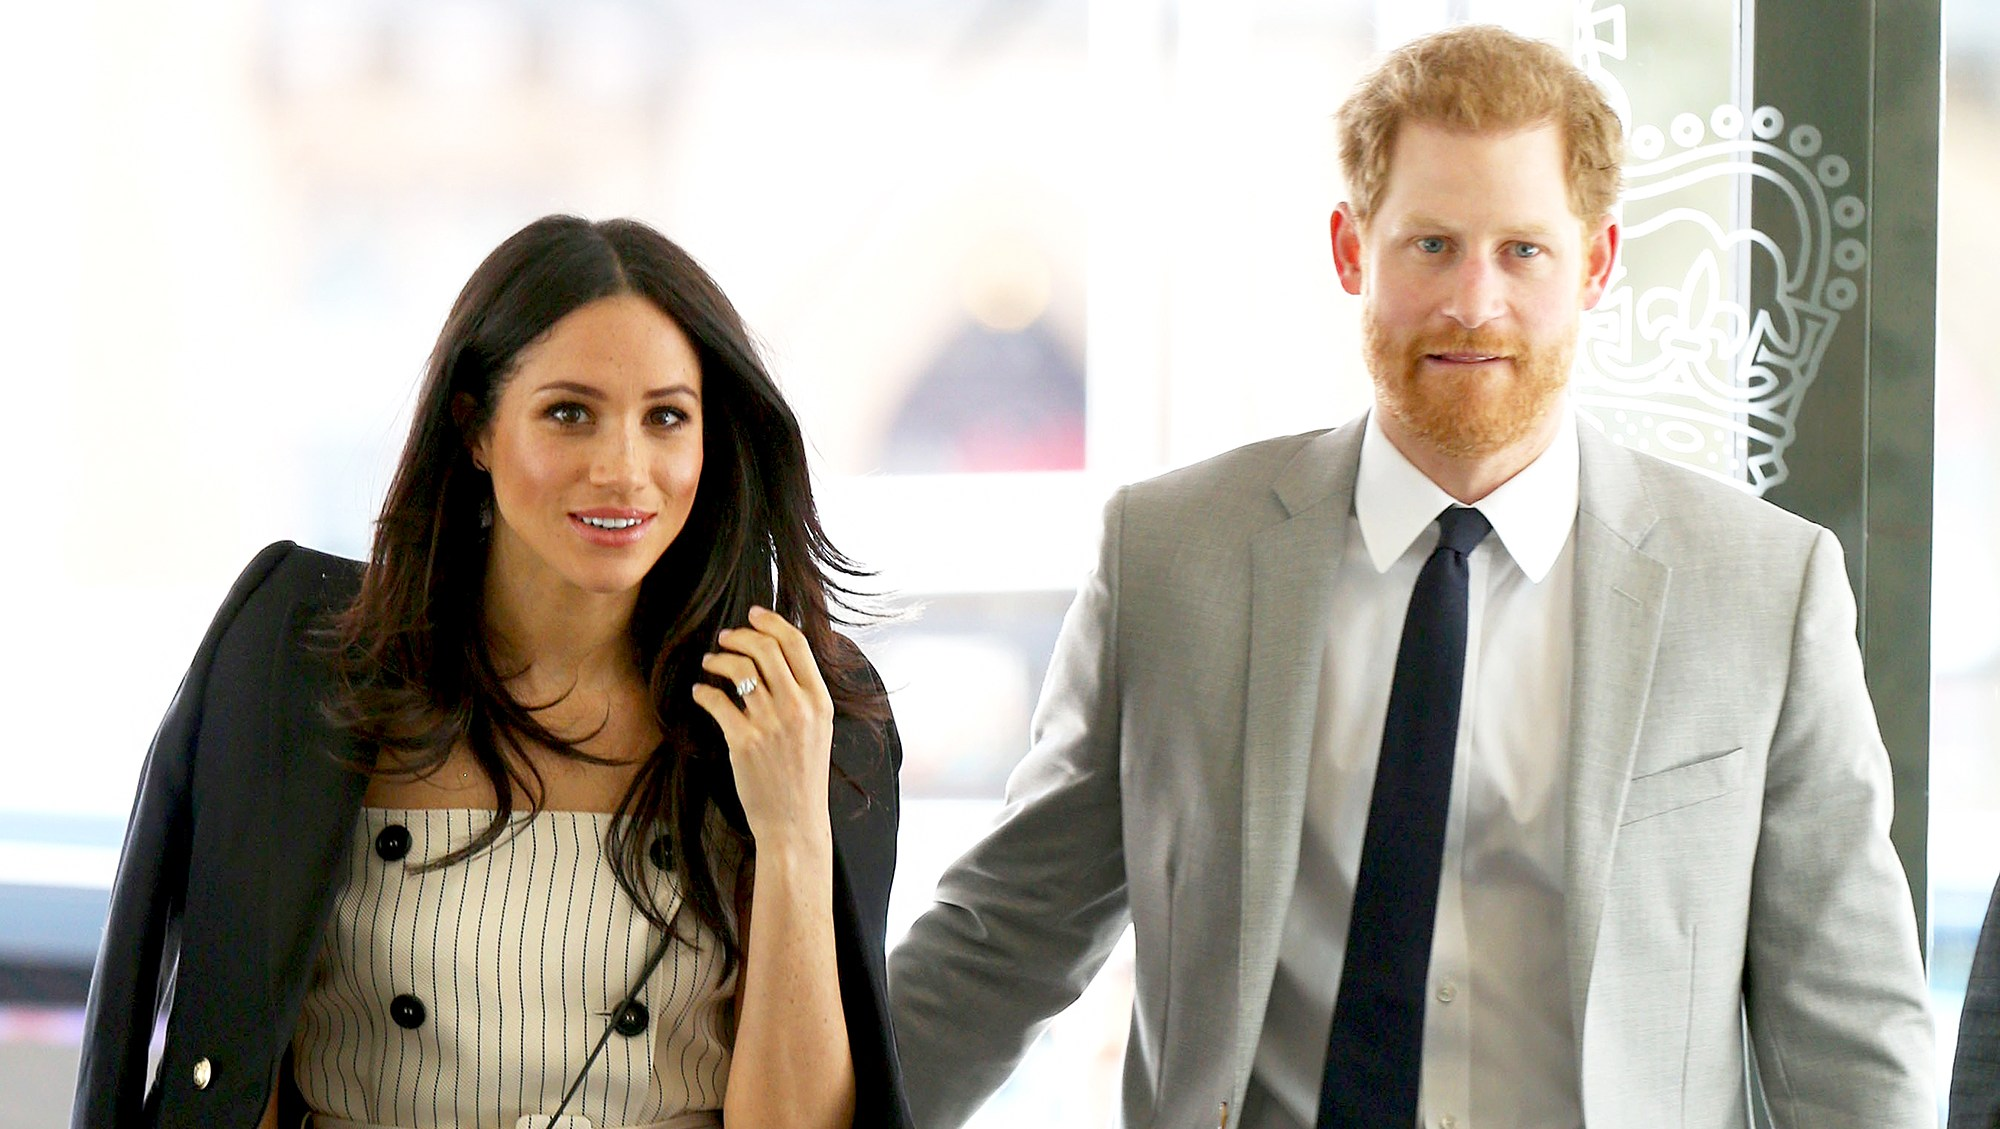 Prince Harry and Meghan Markle arrive to attend a reception with delegates from the Commonwealth Youth Forum in central London on April 18, 2017.